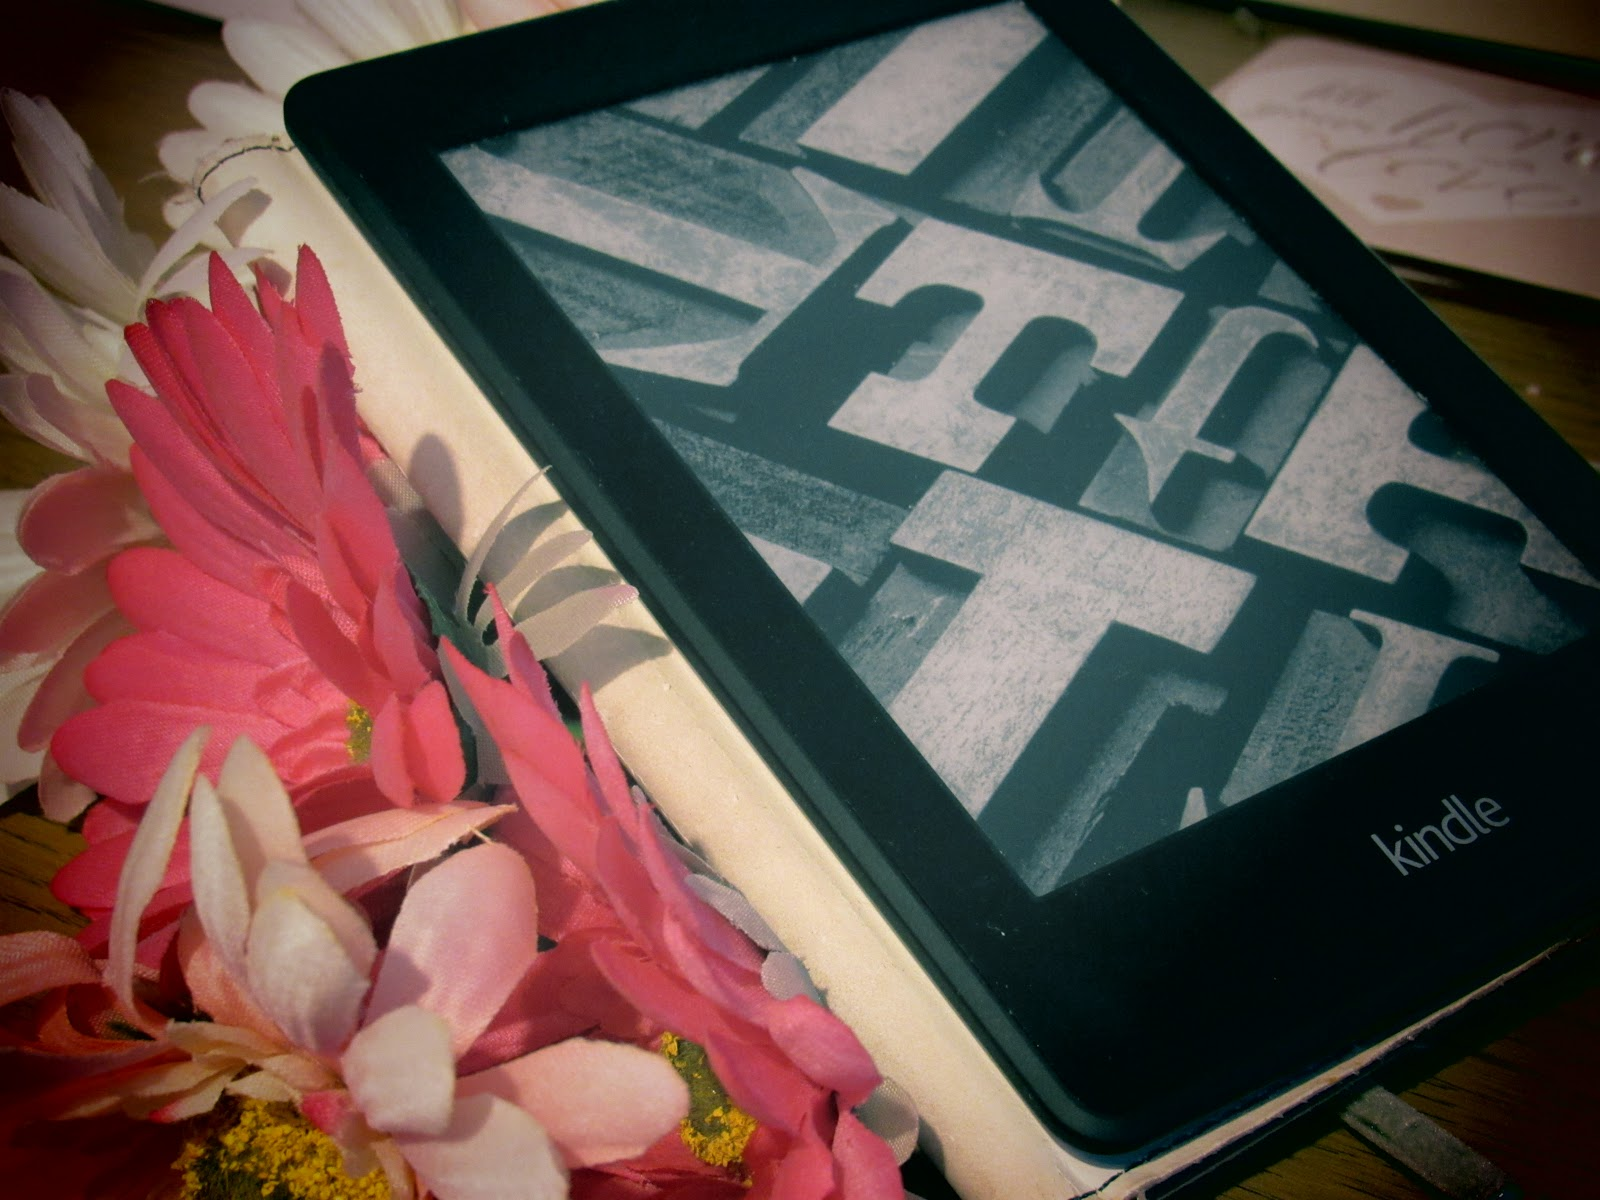 Floral arrangement and Kindle